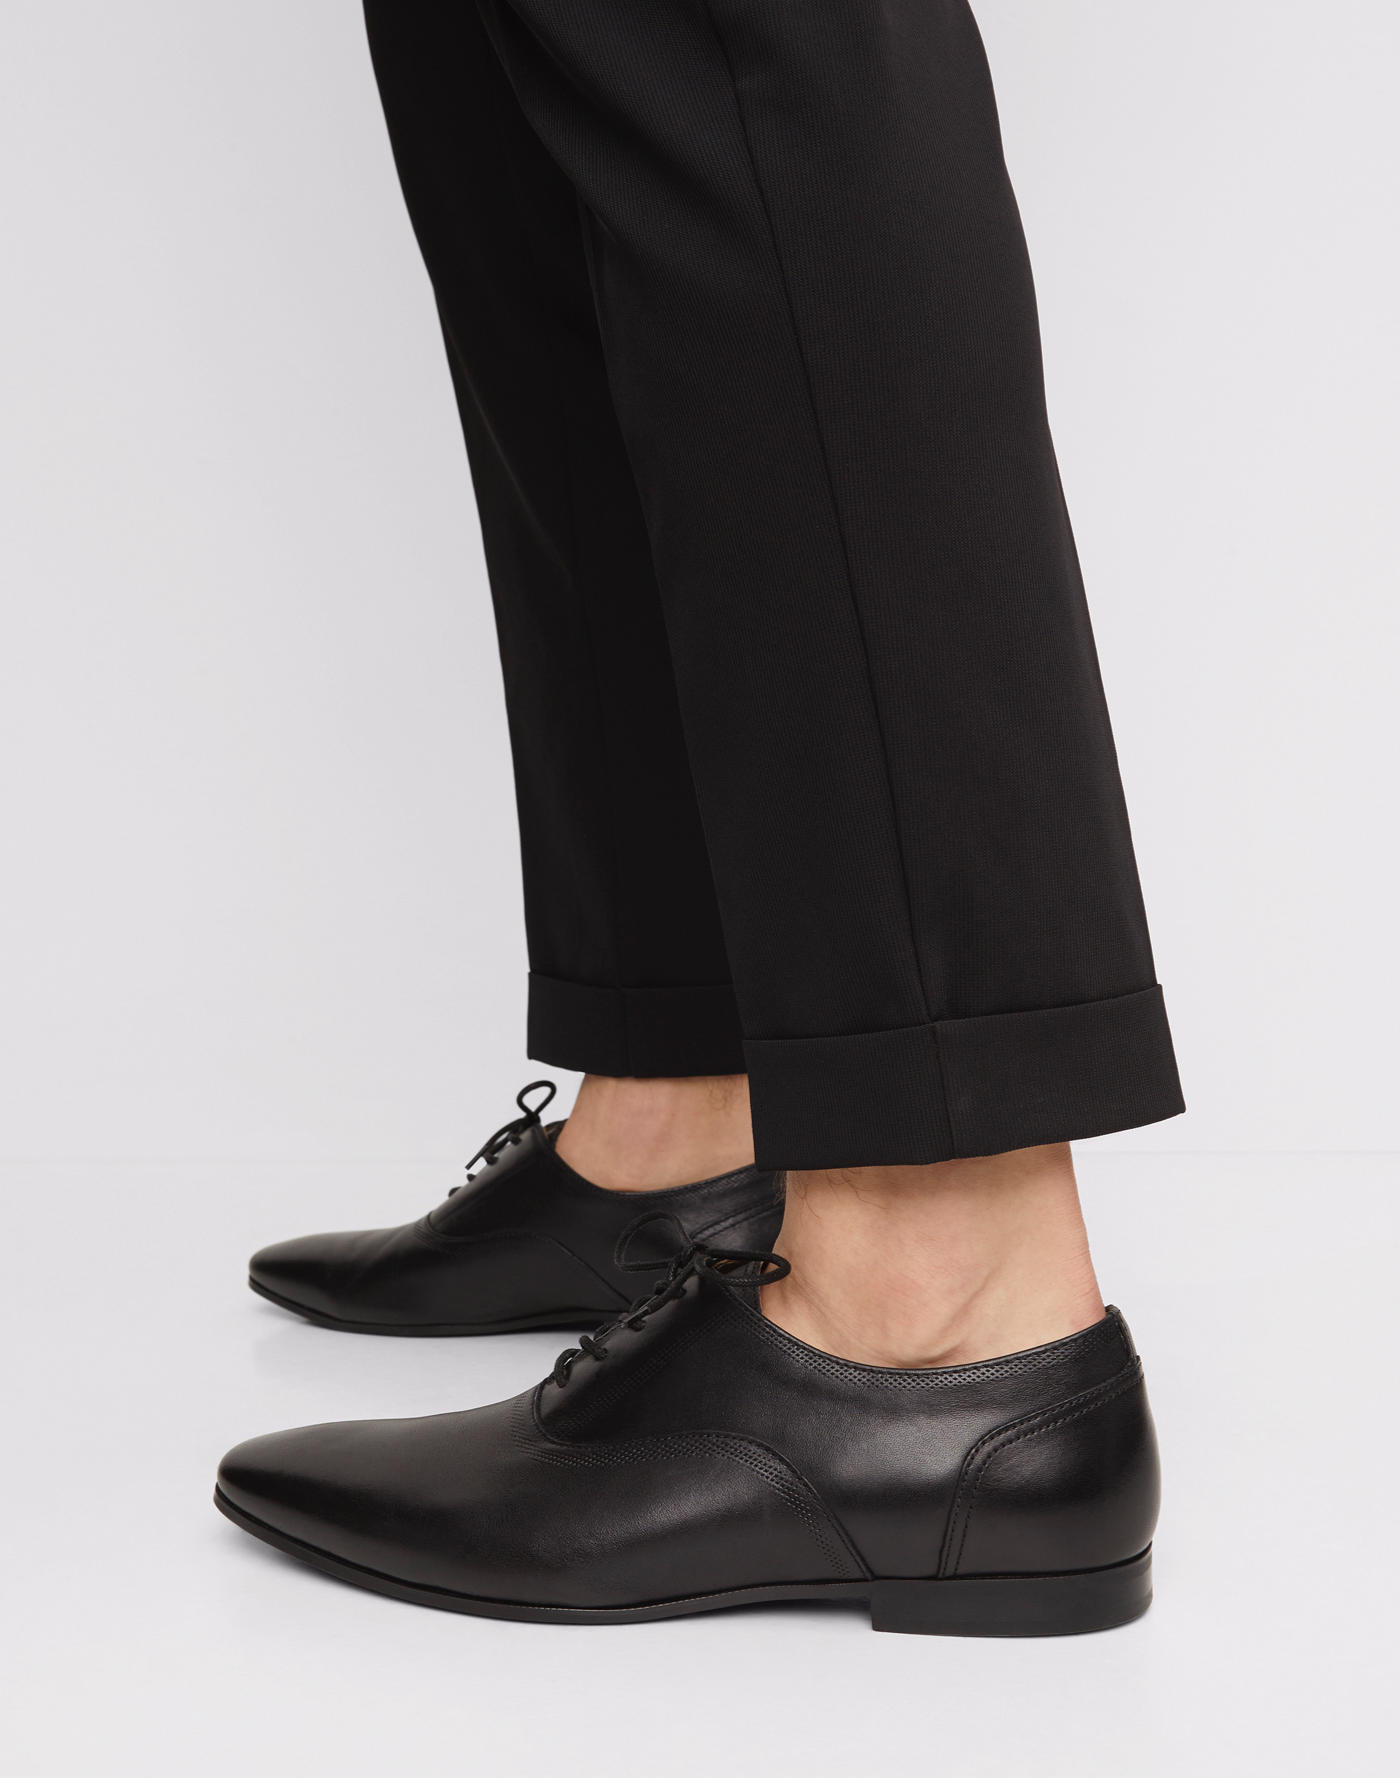 Men's Dress Shoes | Formal & Oxford Shoes For Men | ALDO US